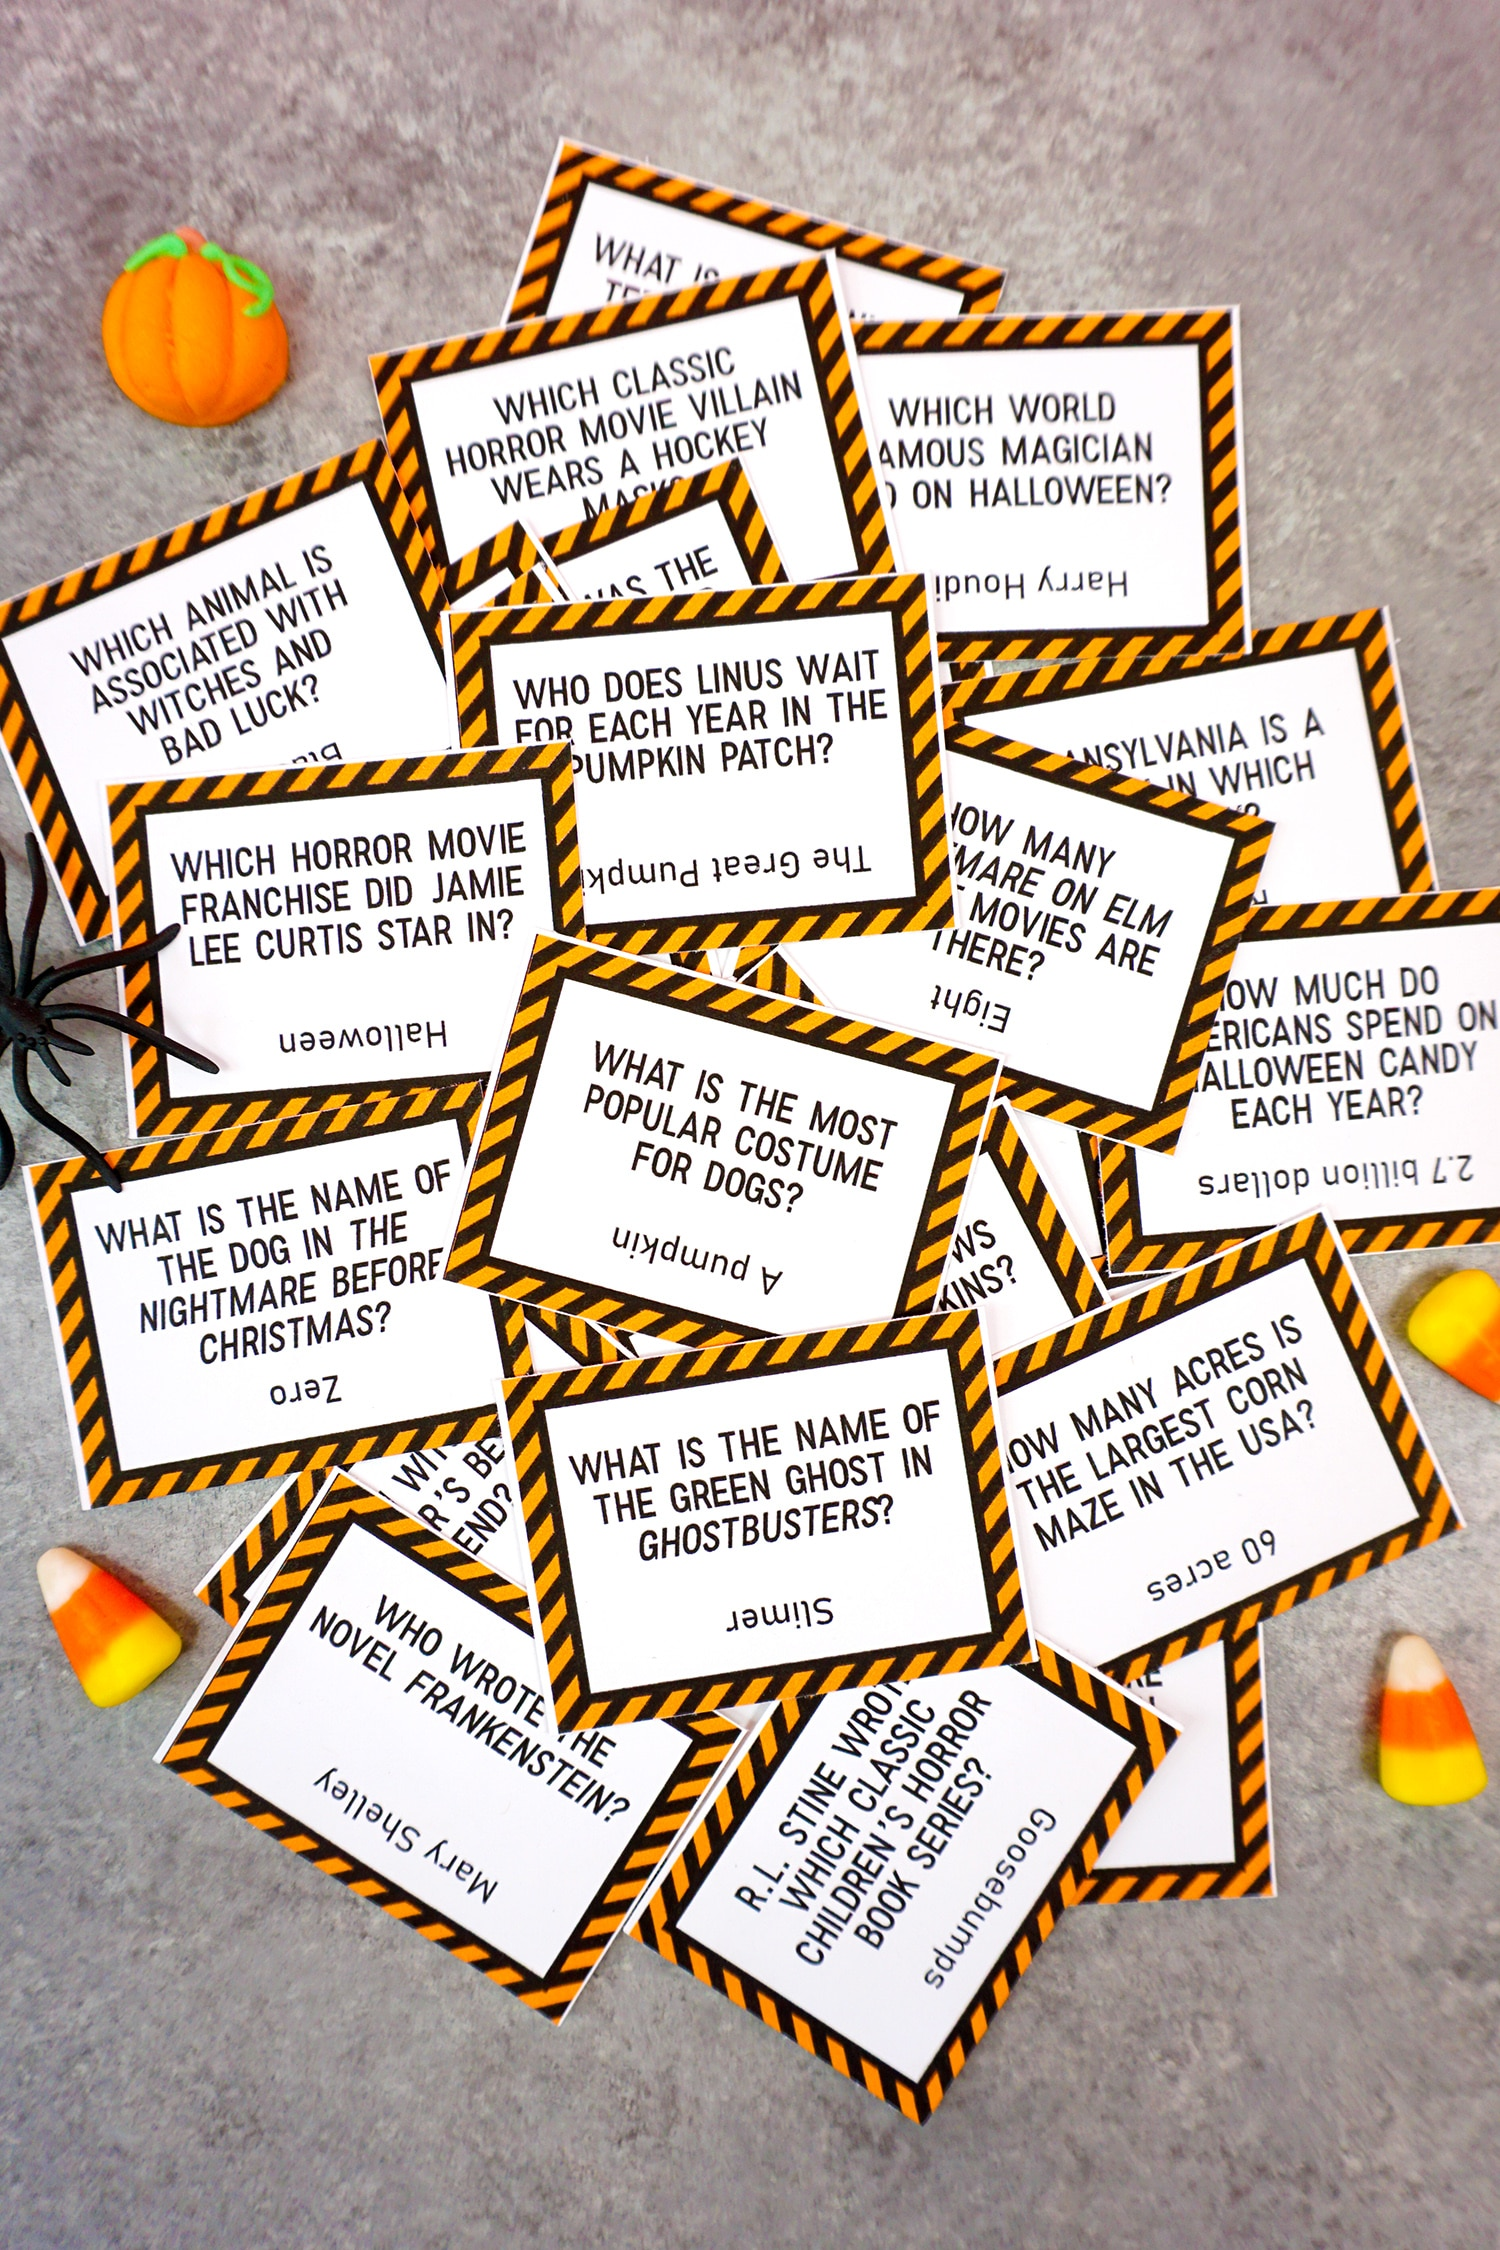 image about Halloween Printable Games titled Printable Halloween Trivia Sport - Pleasure is Do-it-yourself